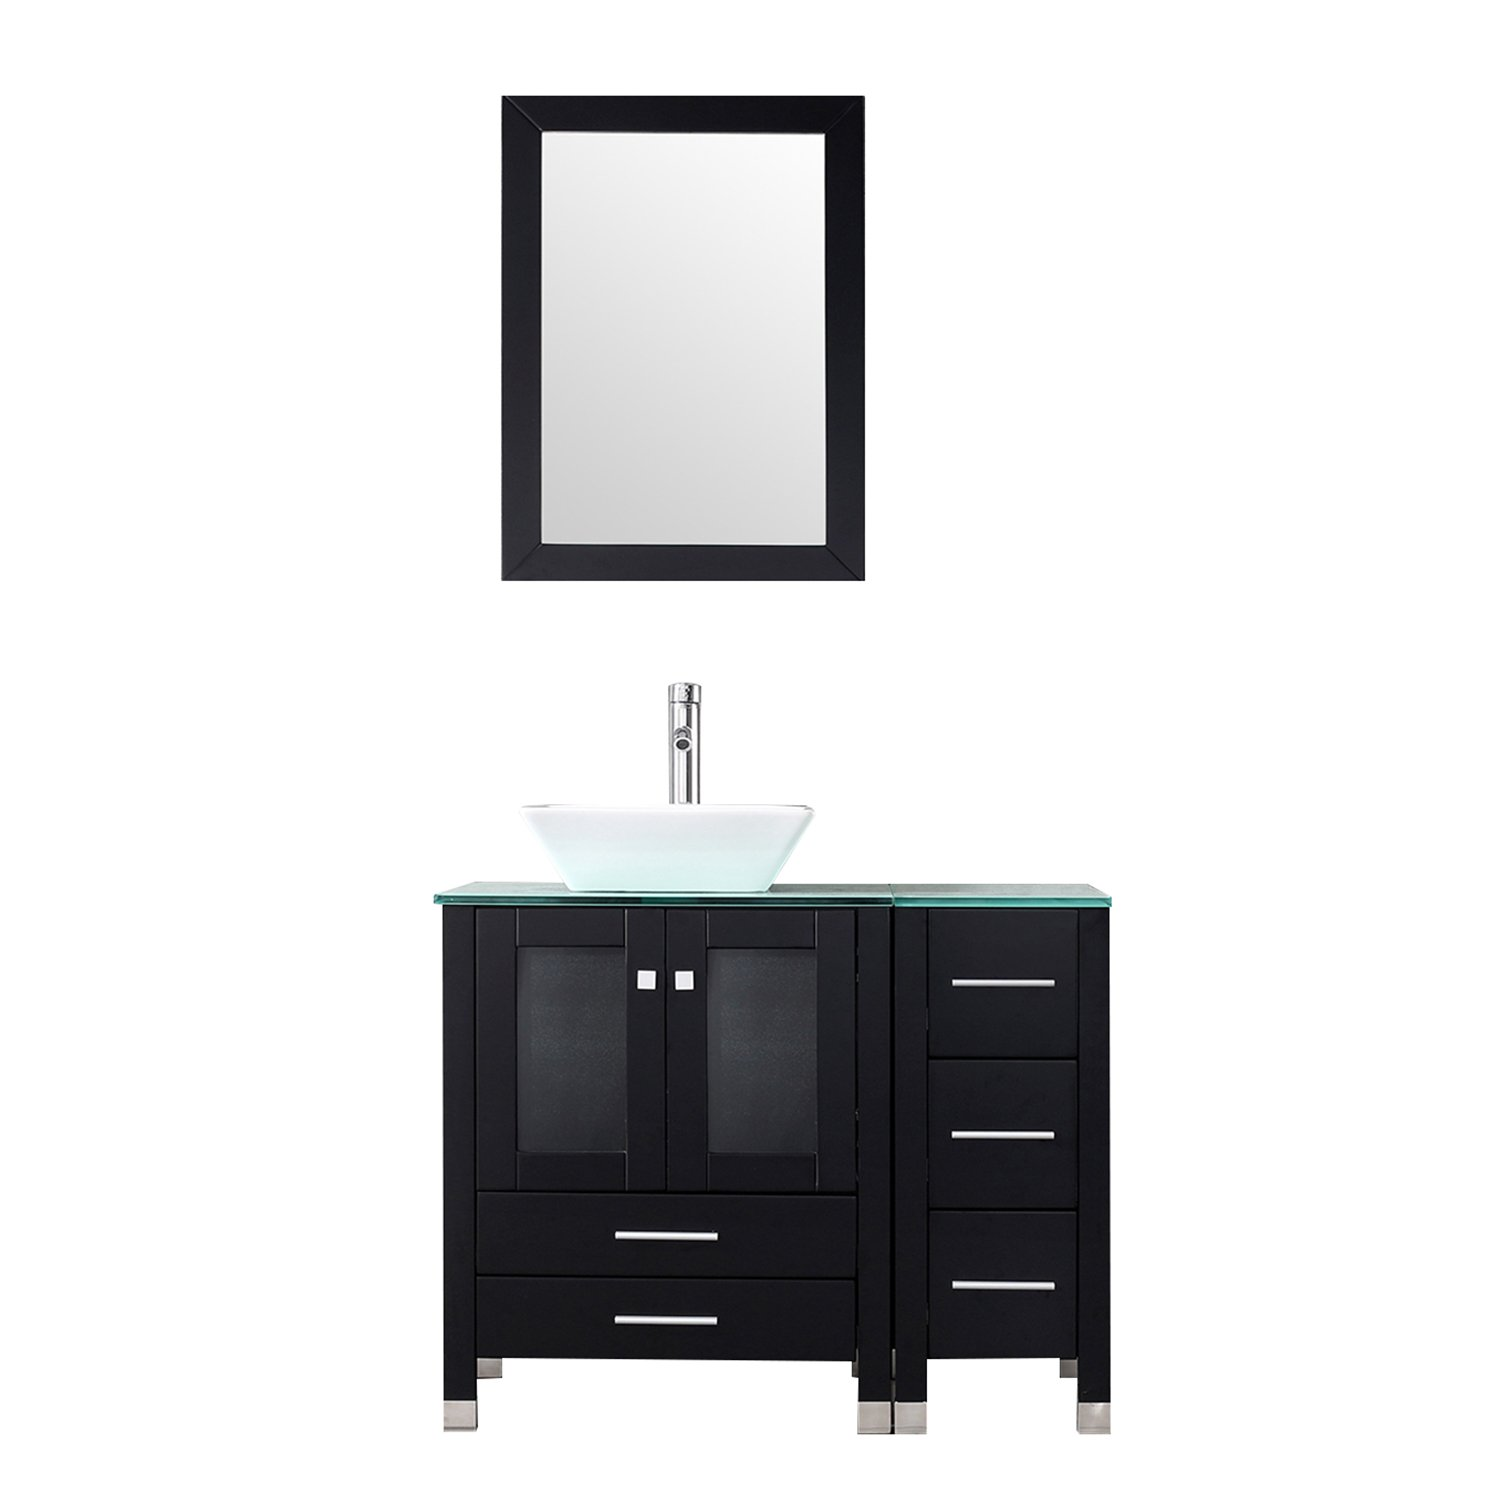 BATHJOY 36 Modern Wood Bathroom Vanity Cabinet White Square Ceramic Vessel Sink Top Free Faucet Drain Combo with Mirror